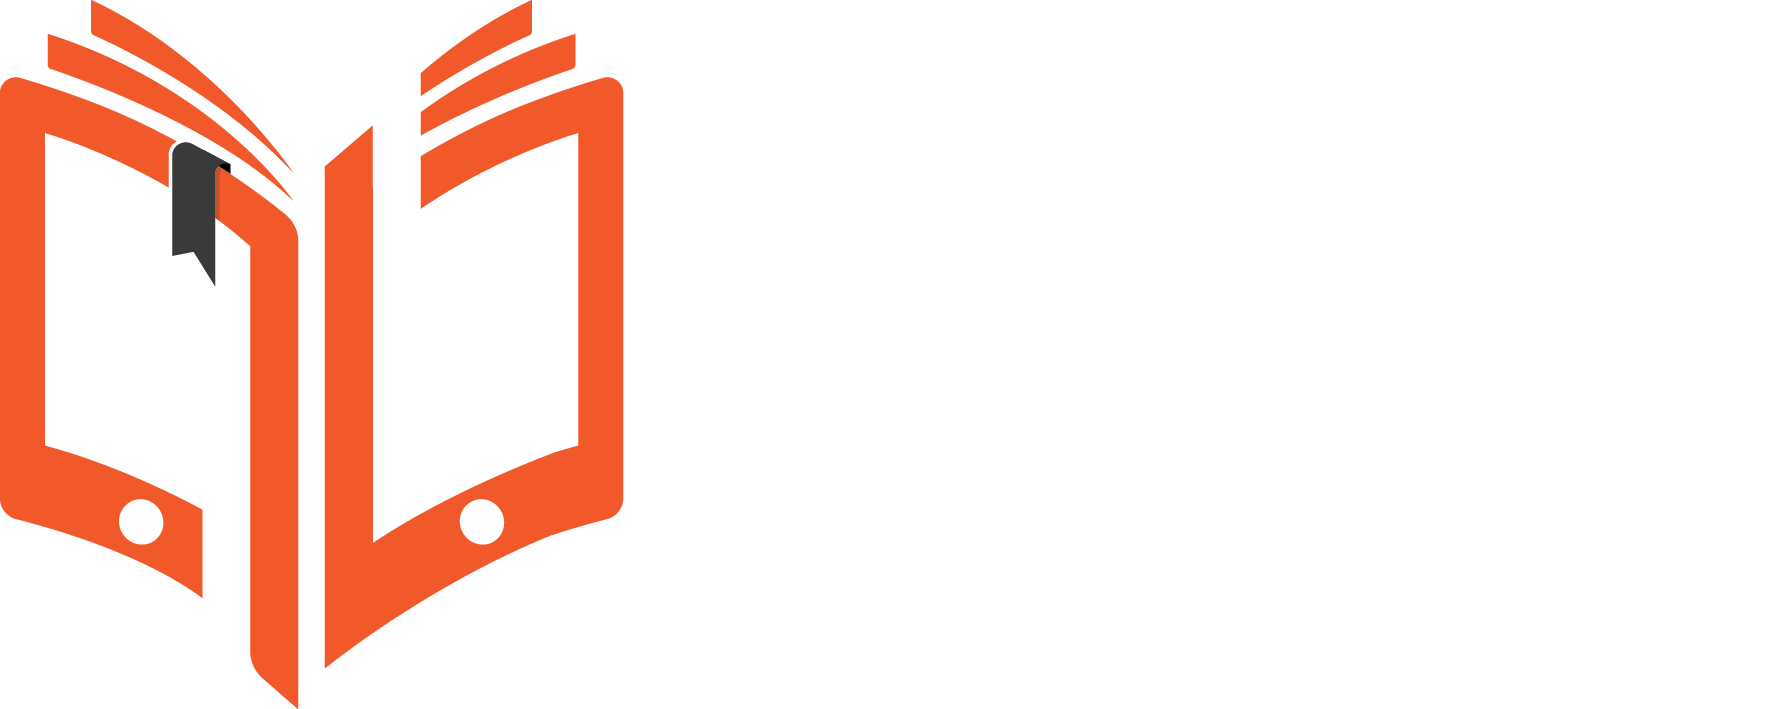 The Chaptr